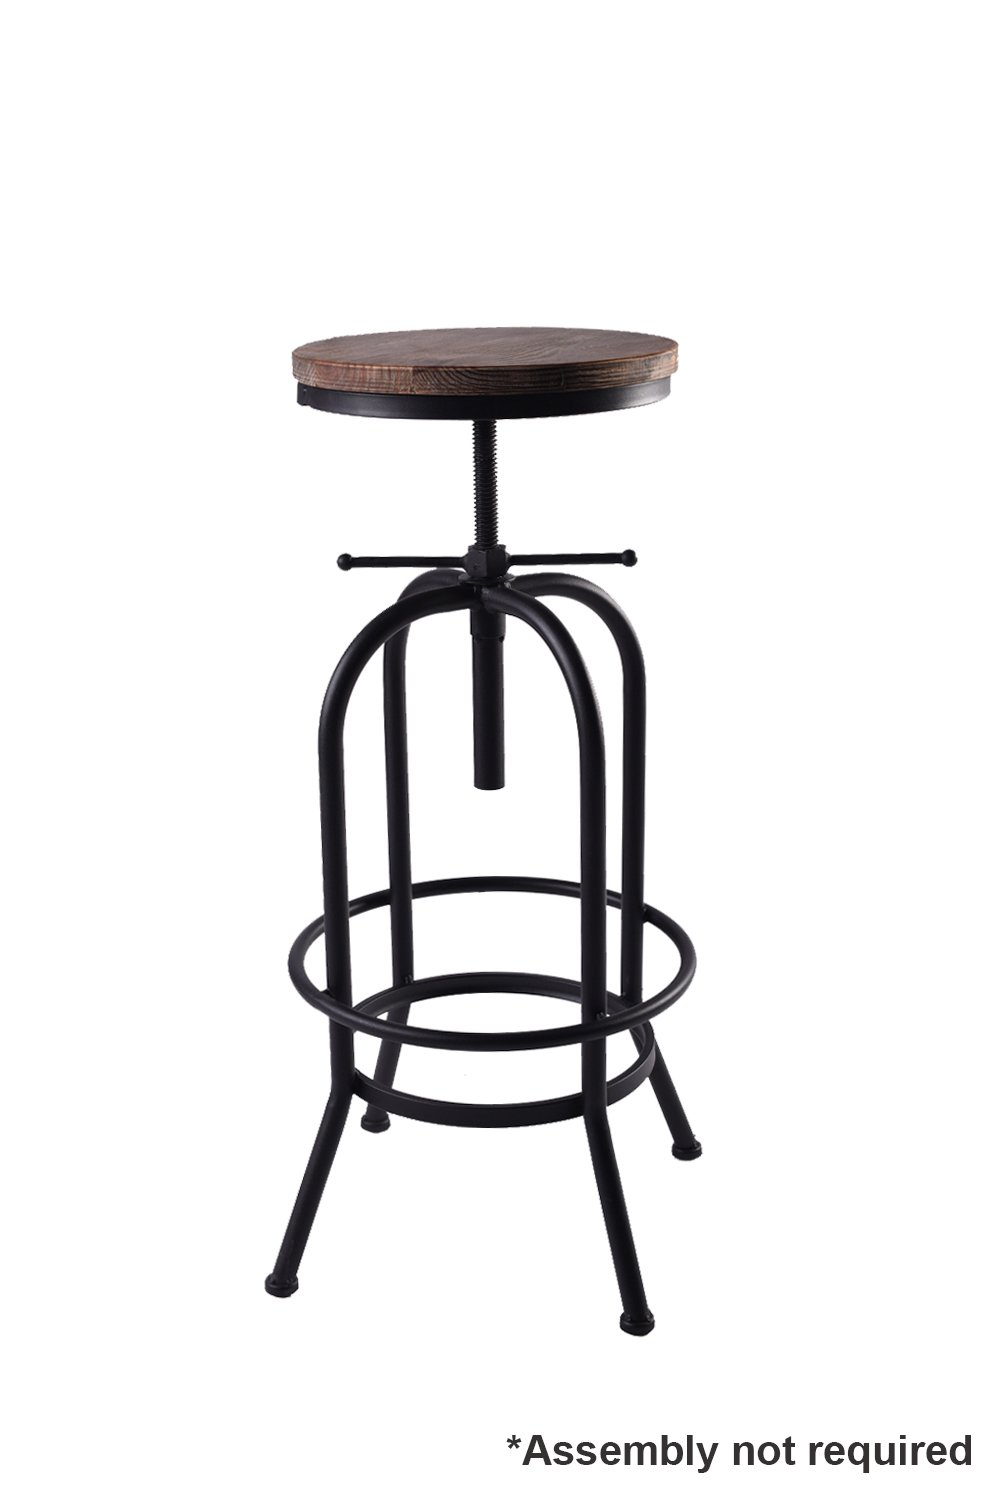 Articial Adjustable Rustic Industrial Bar Stool Swivel Pine Wood Top Metal Frame Bar Chair Footrest Leisure Coffee Chair